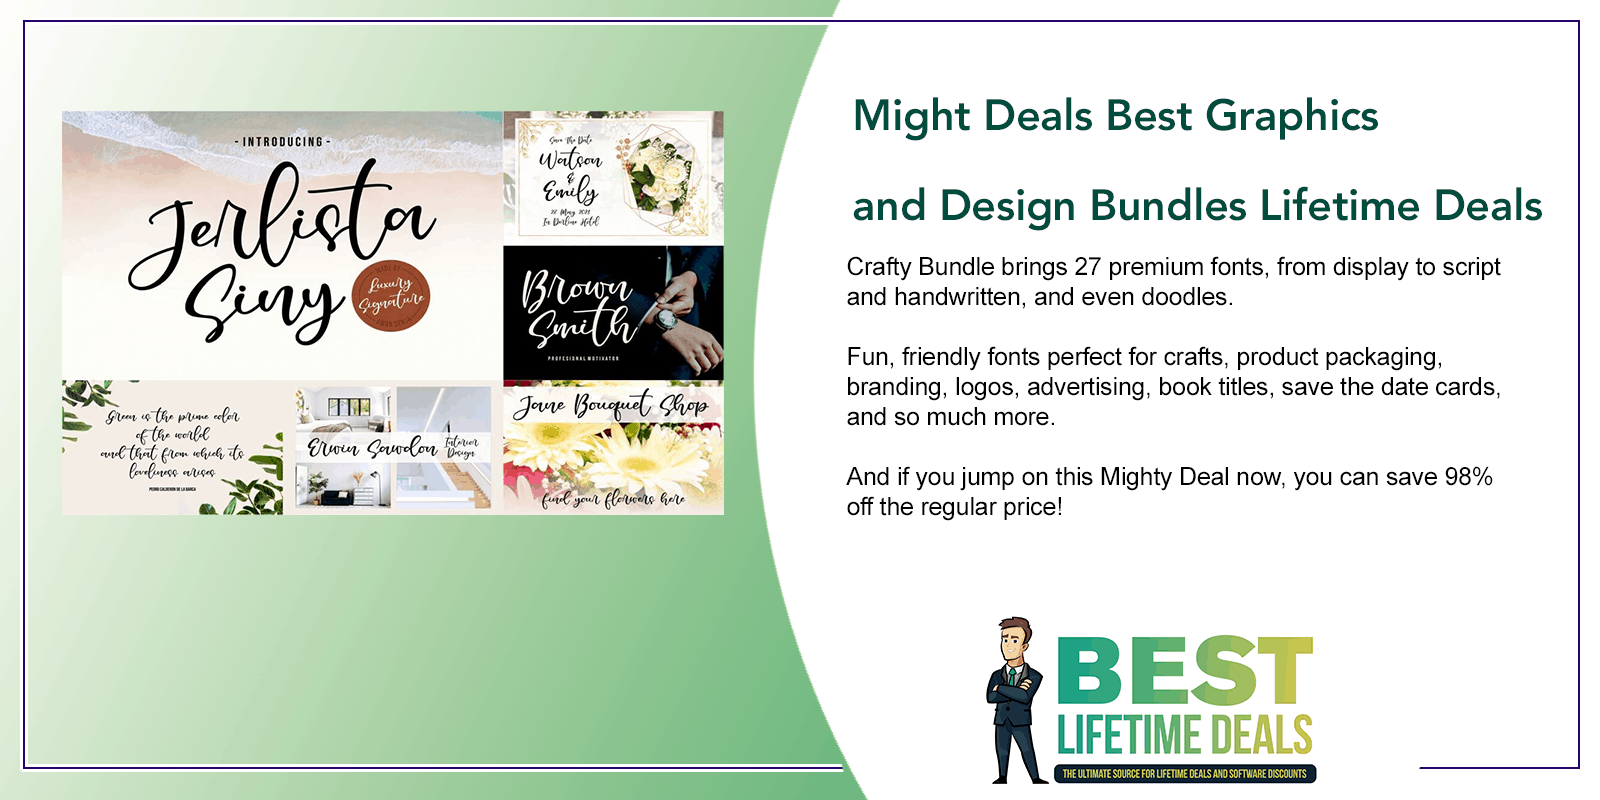 Might Deals Best Graphics and Design Bundles Featured Image